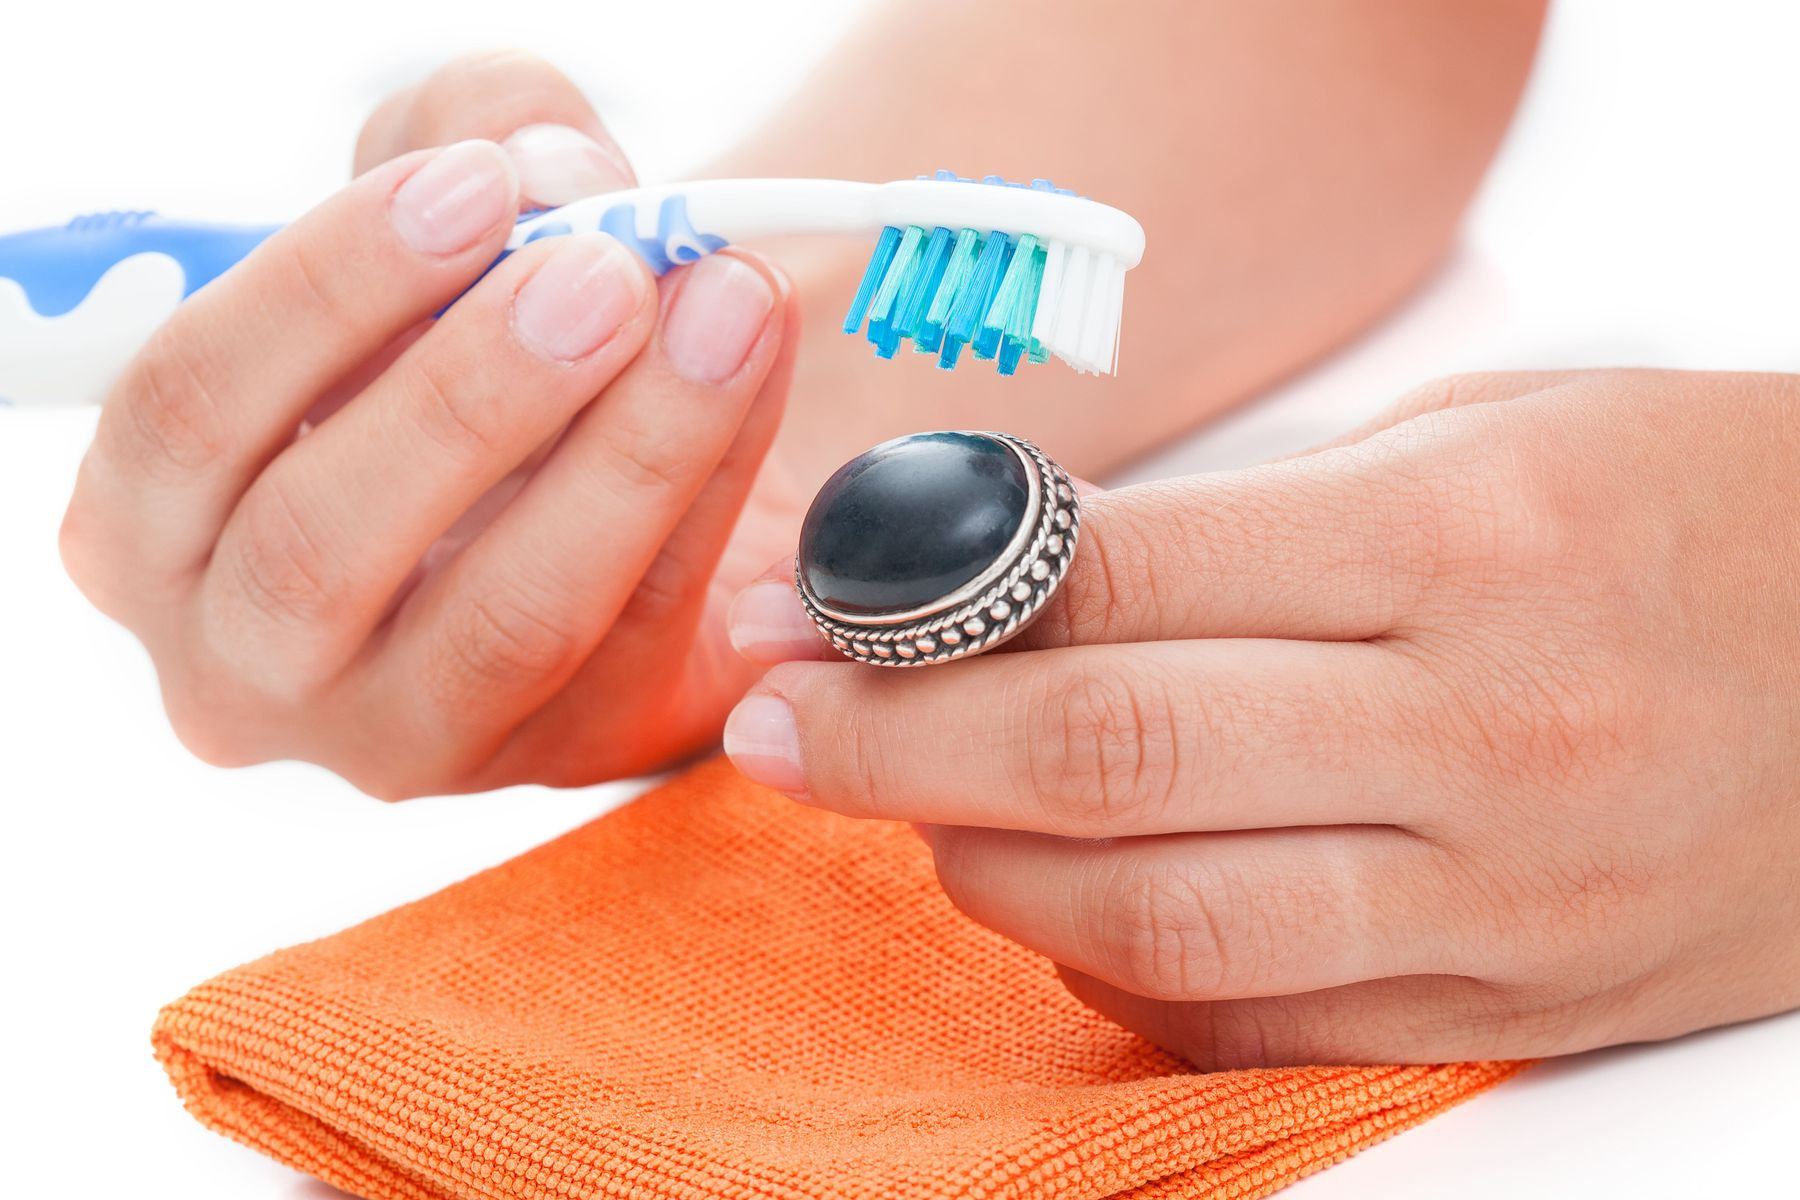 How to clean a wedding ring and keep it shining